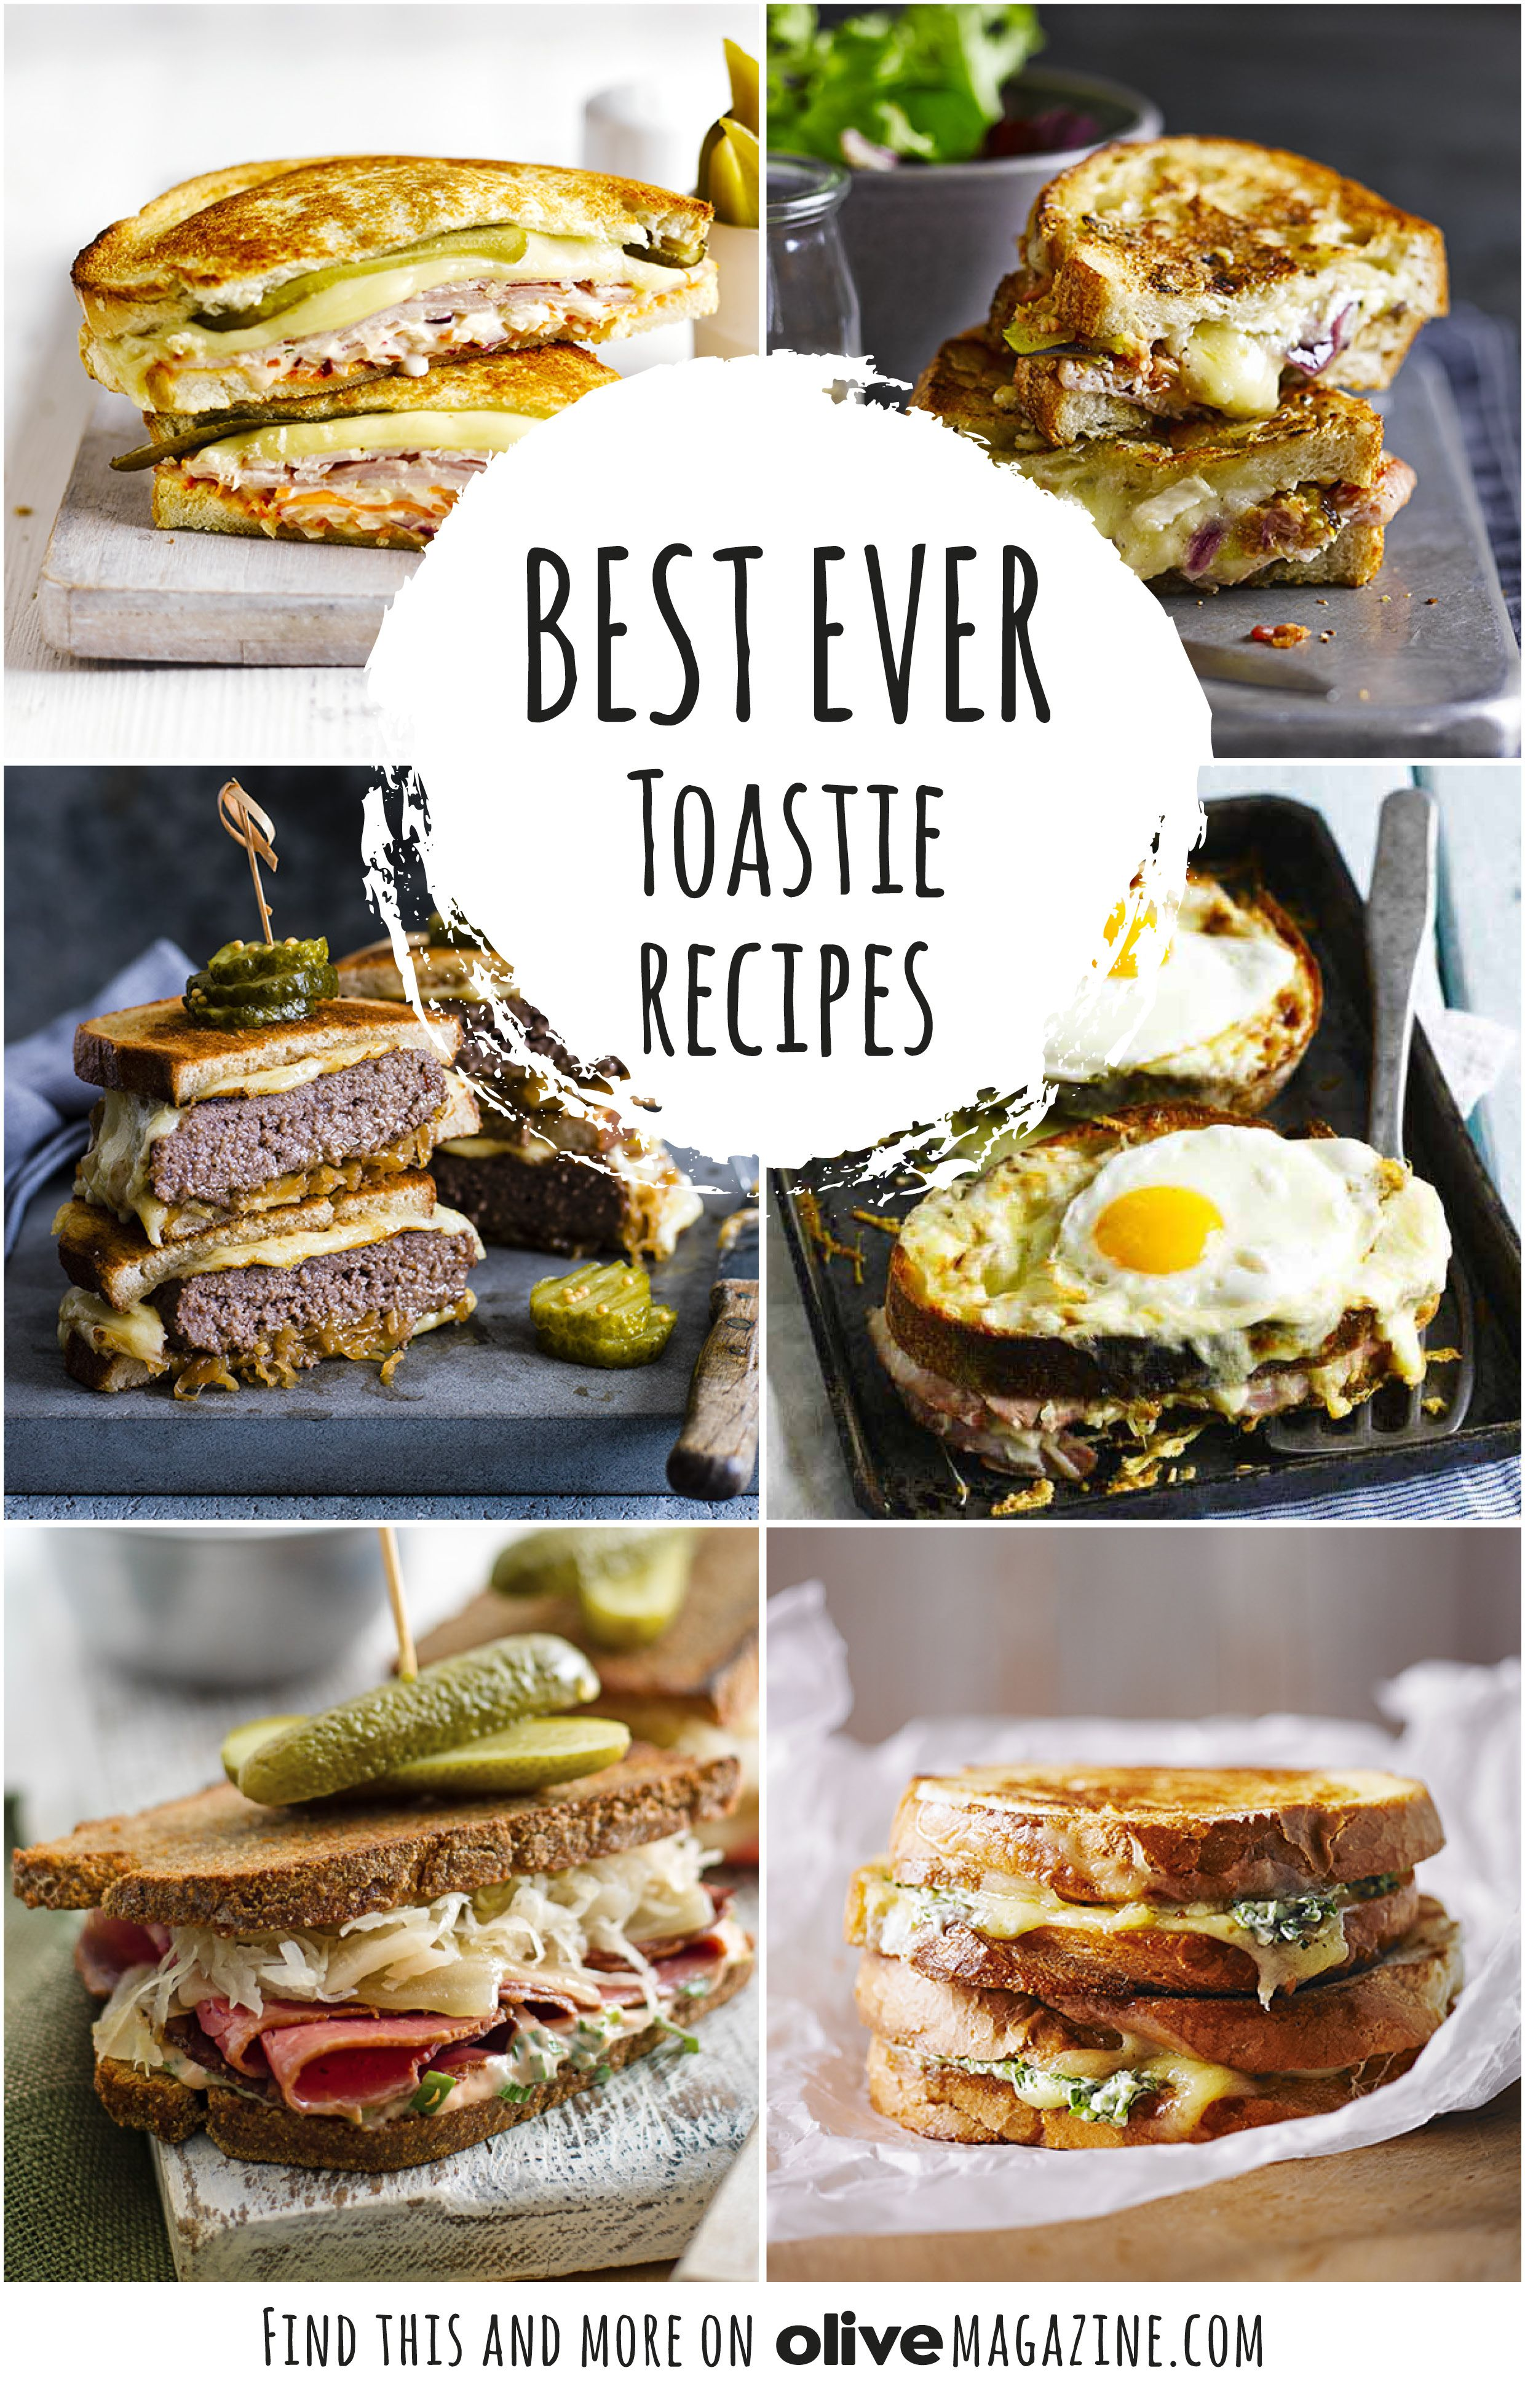 Best ever toastie recipes lunches snacks and meals oozing with cheese the humble toastie is the ultimate quick comfort food whether as a snack lunch or speedy evening meal toasted sandwich recipes forumfinder Choice Image